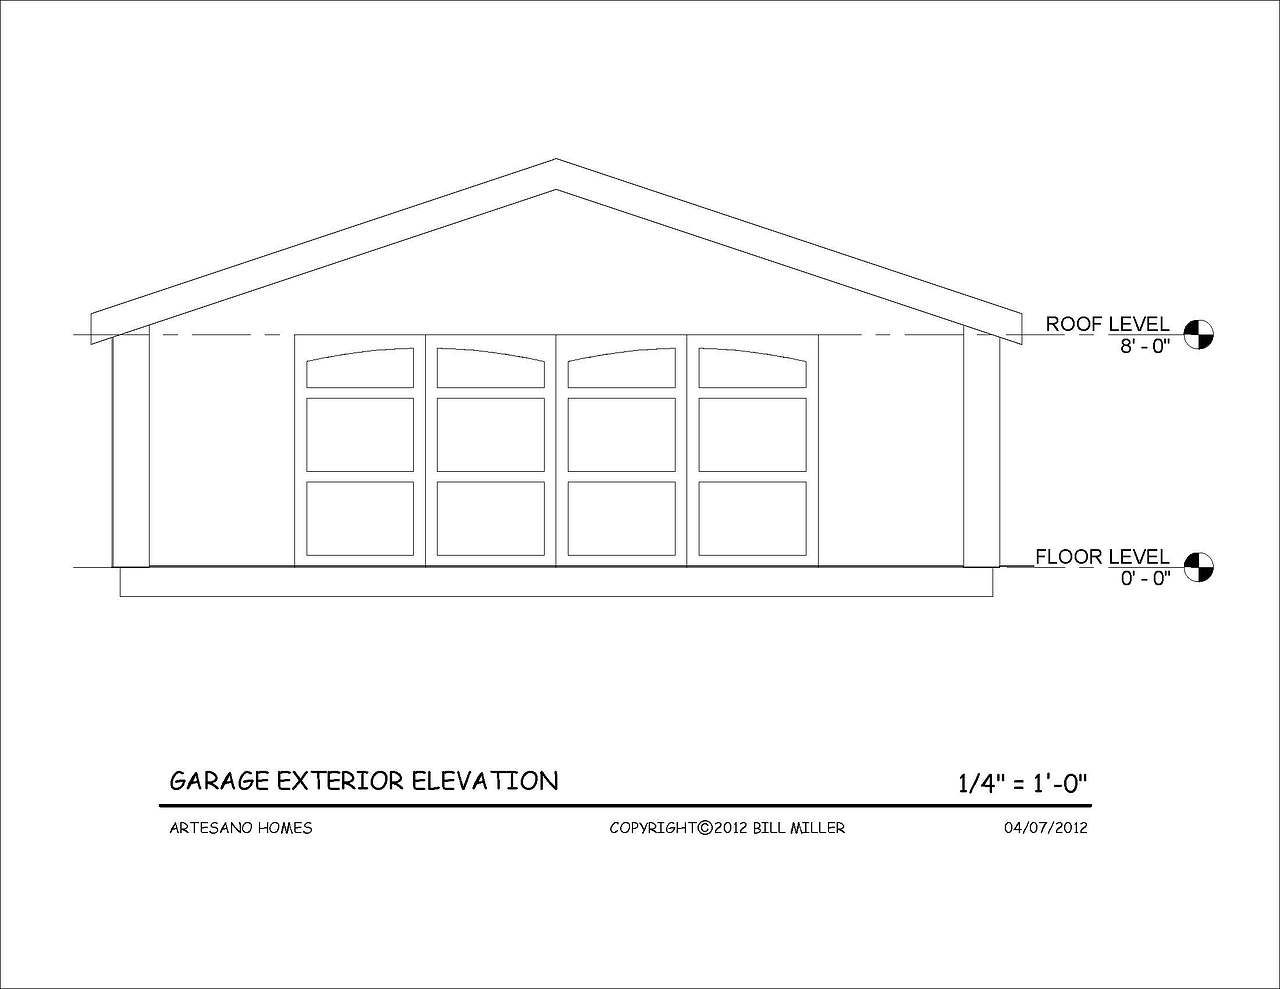 Front Elevation Design In Revit : Alexandra lyn miller certified interior designer wix